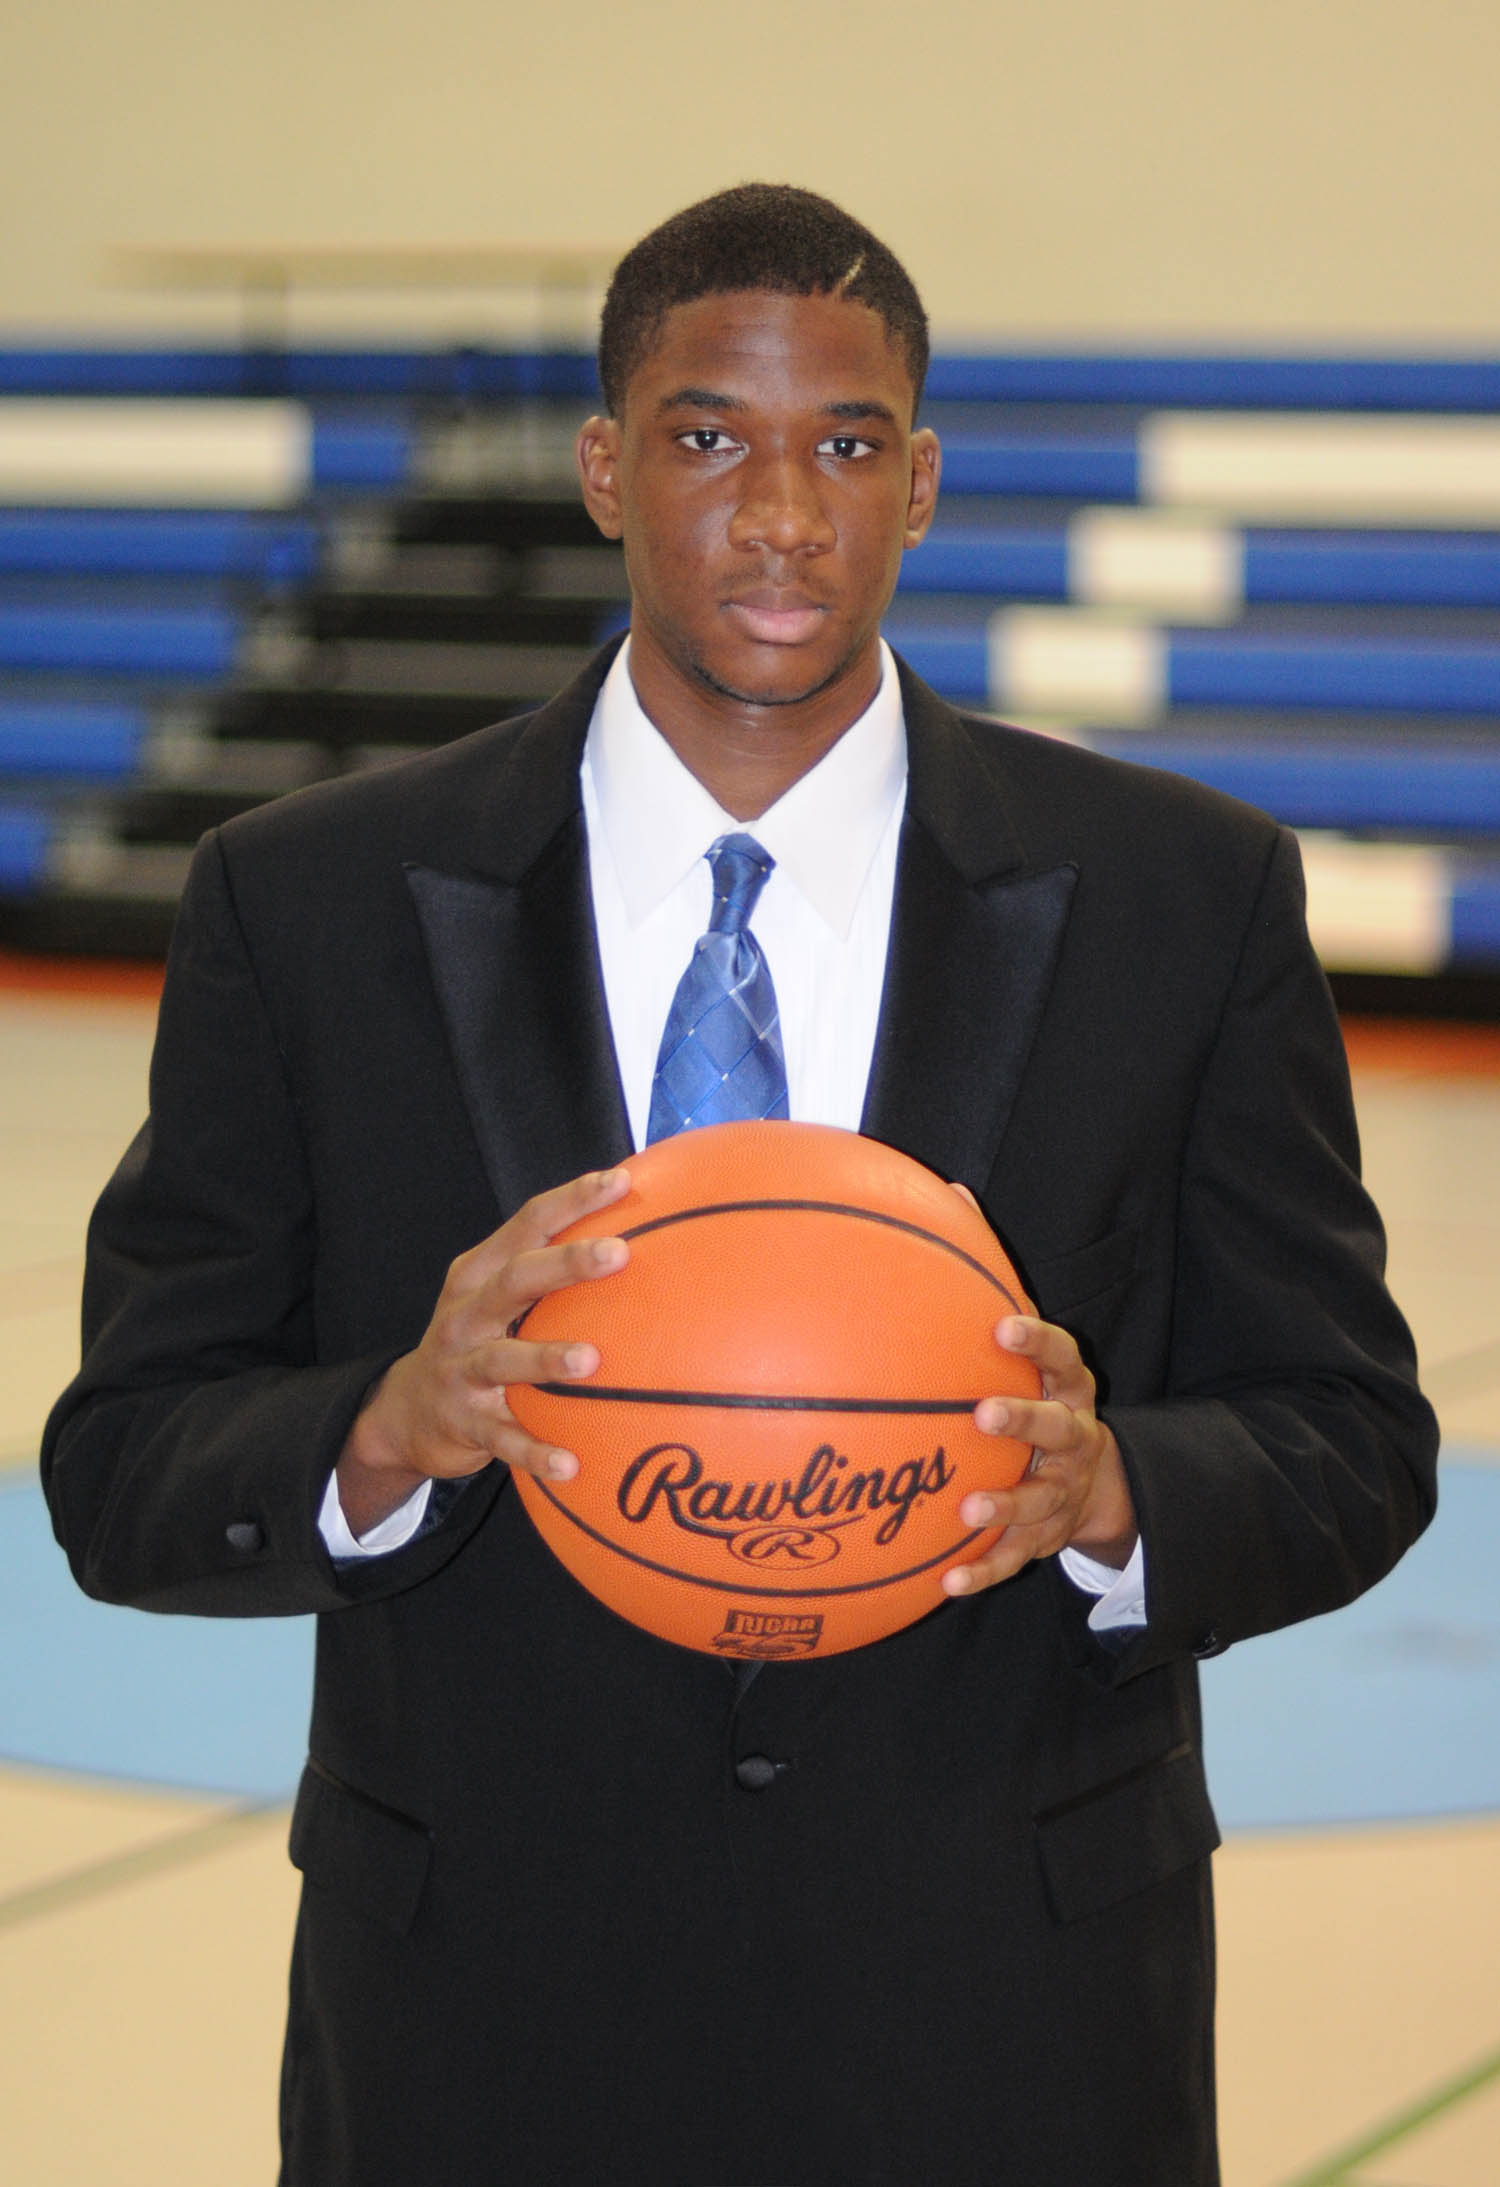 Click to enlarge,  Central Carolina Community College center Julian Bailey has received a full athletic scholarship to play for the Milligan College Buffaloes, in Johnson City, Tenn. In 2014, Milligan's men's basketball team was the NAIA Division I National Champion. Bailey, the son of Ronald and Jennifer Bailey, of Fayetteville, received his Associate in Arts degree at CCCC's May graduation. For more information about athletics at CCCC, visit www.cccc.edu/sports.